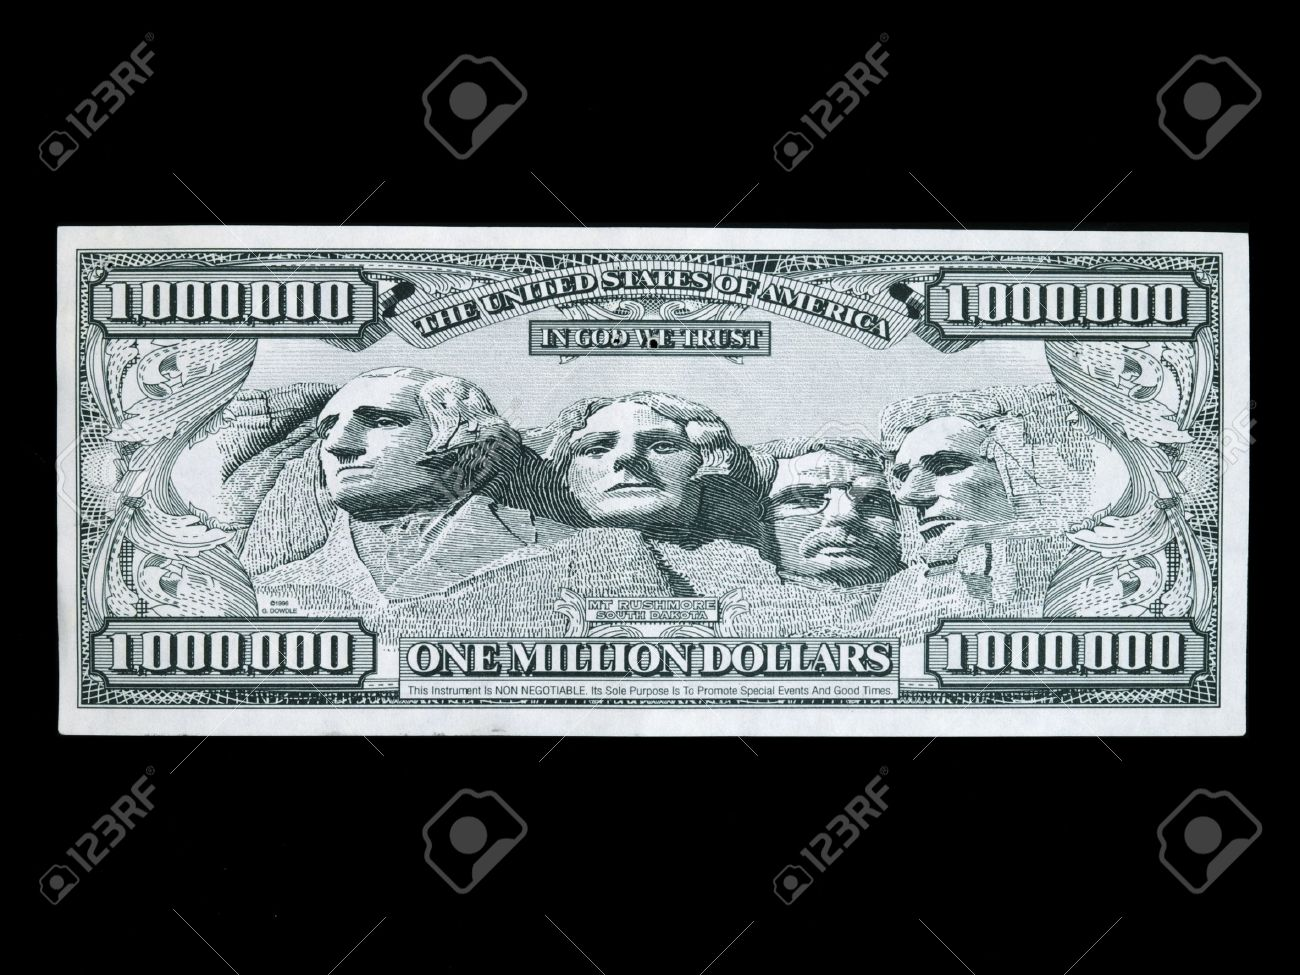 image relating to Fake Million Dollar Bill Printable referred to as untrue a single million greenback monthly bill